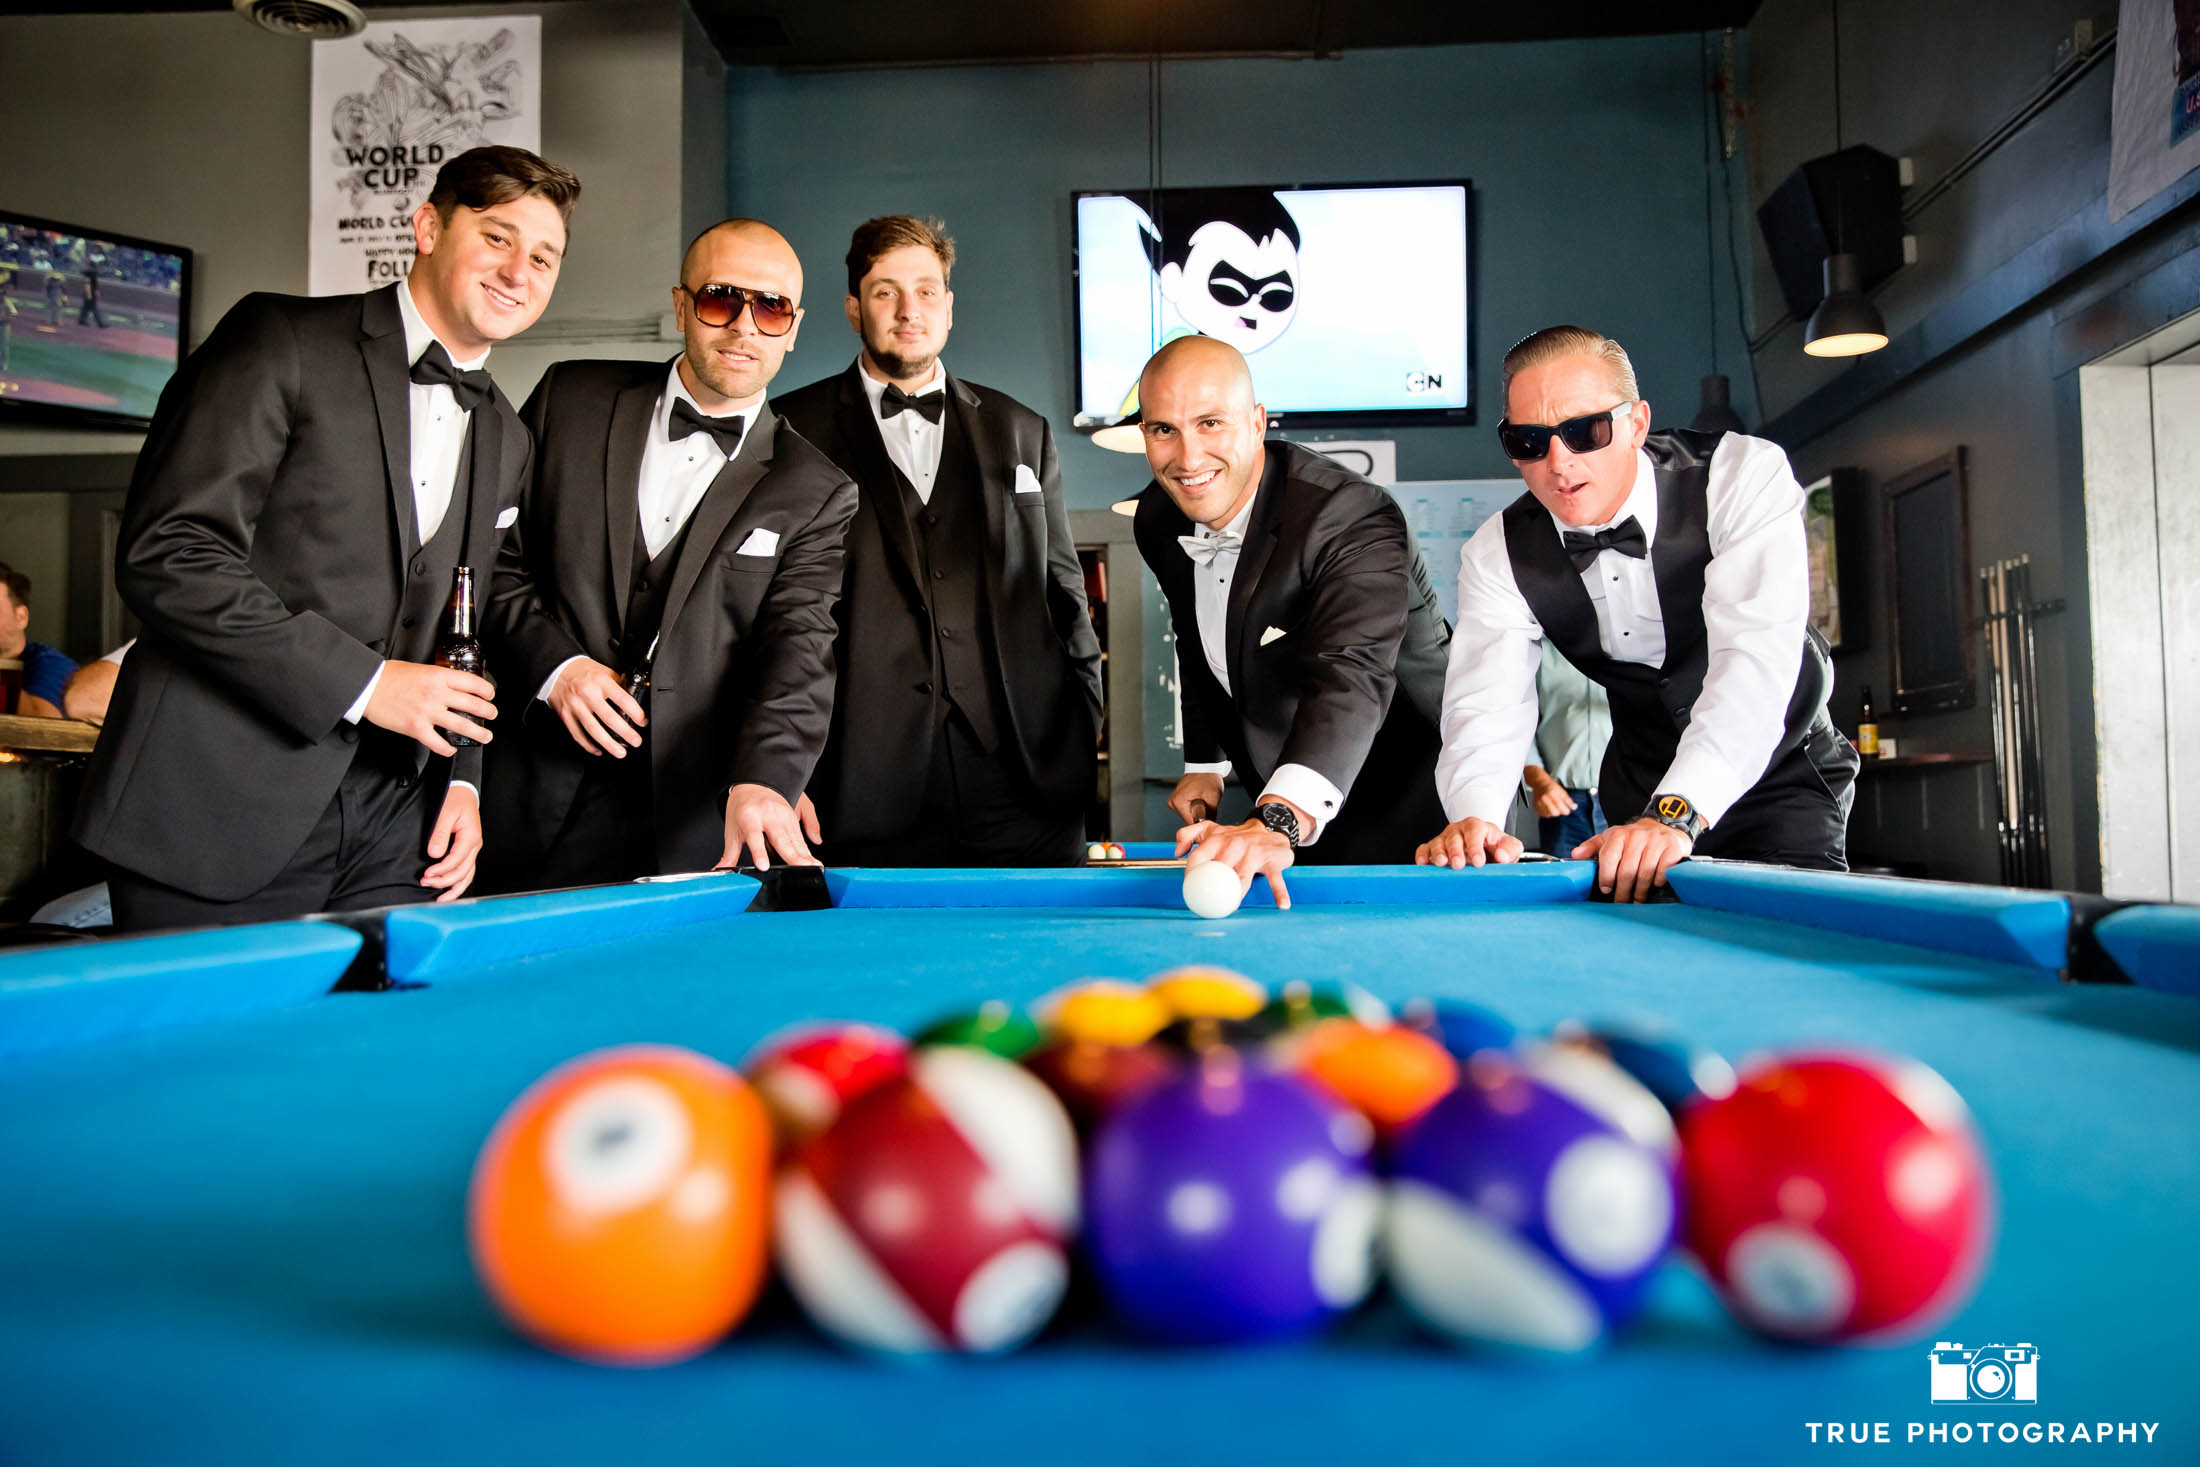 Groomsmen having fun playing pool before wedding ceremony